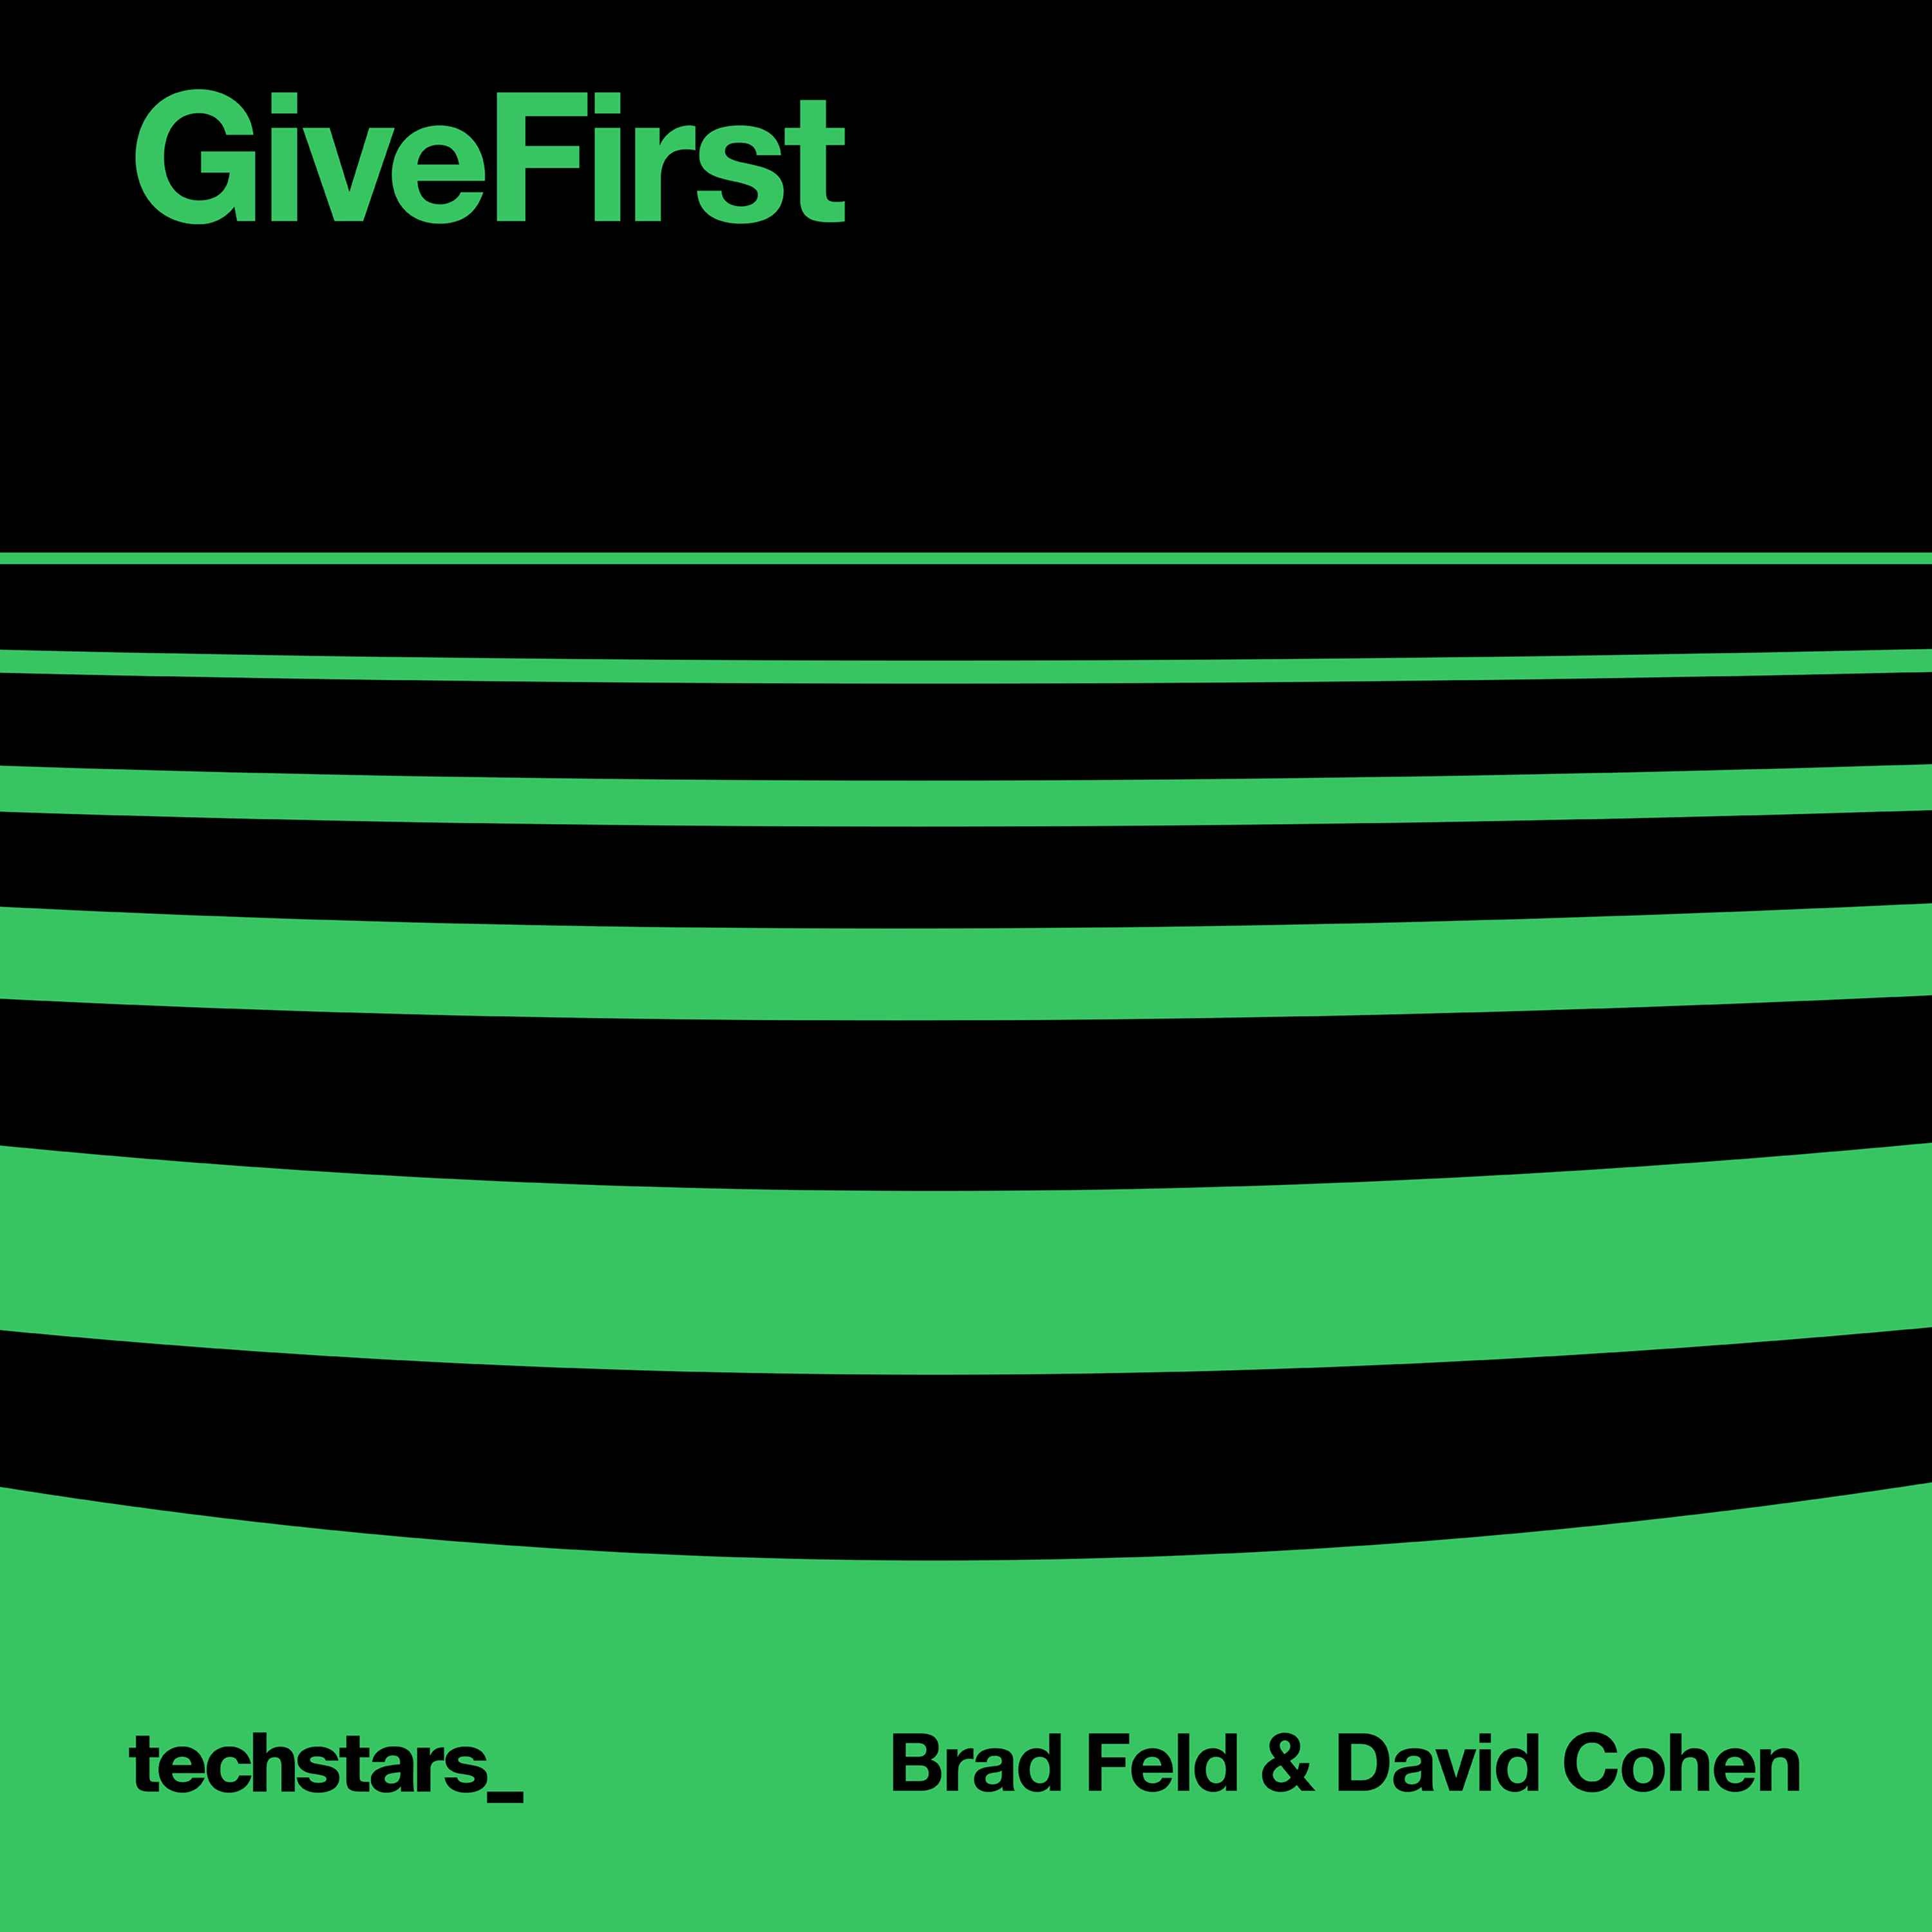 Andy Sack on Give First and Creating a Startup Ecosystem from Scratch